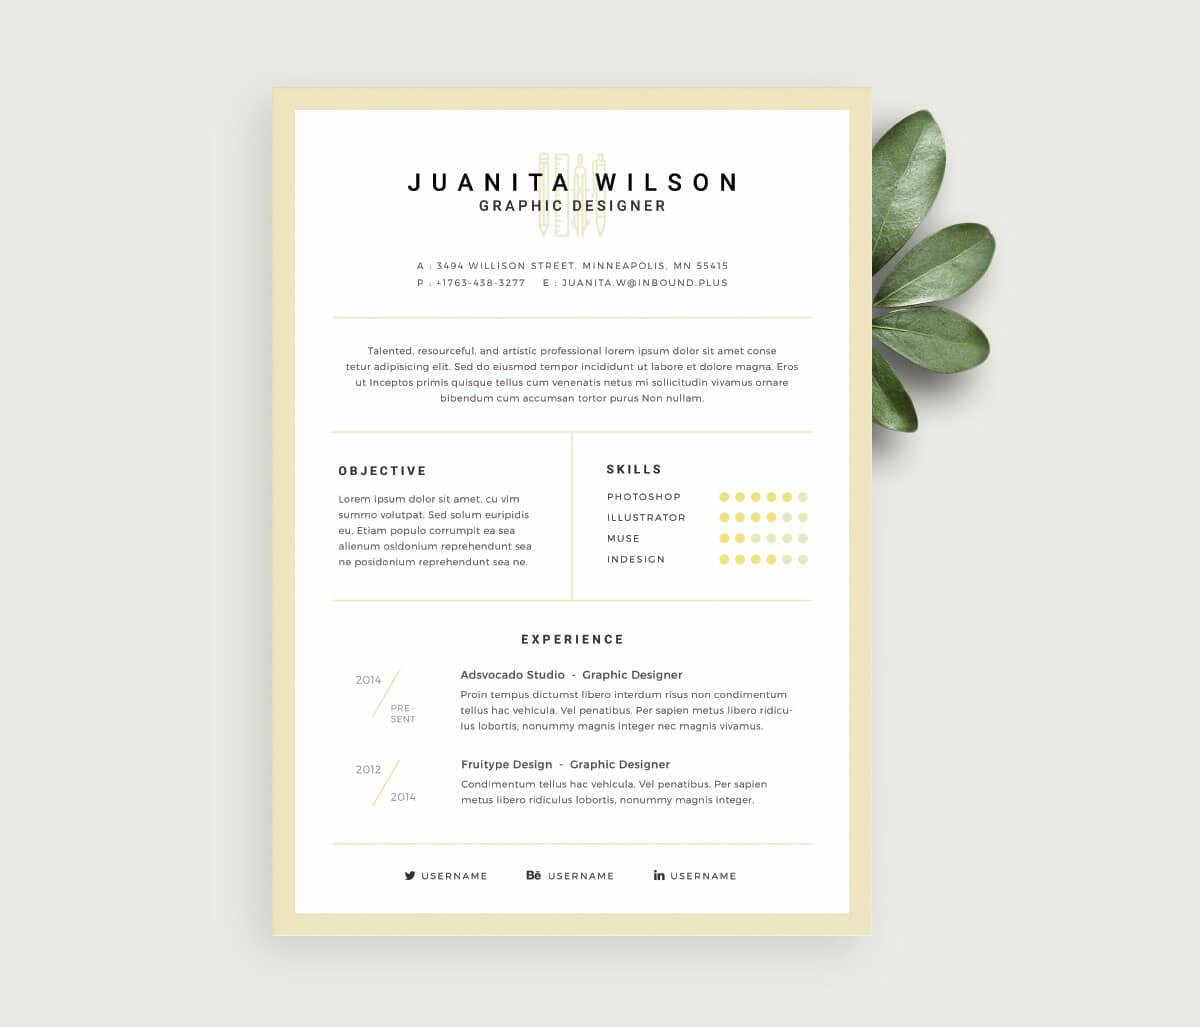 free resume templates 17 downloadable resume templates to use - Free Design Resume Templates